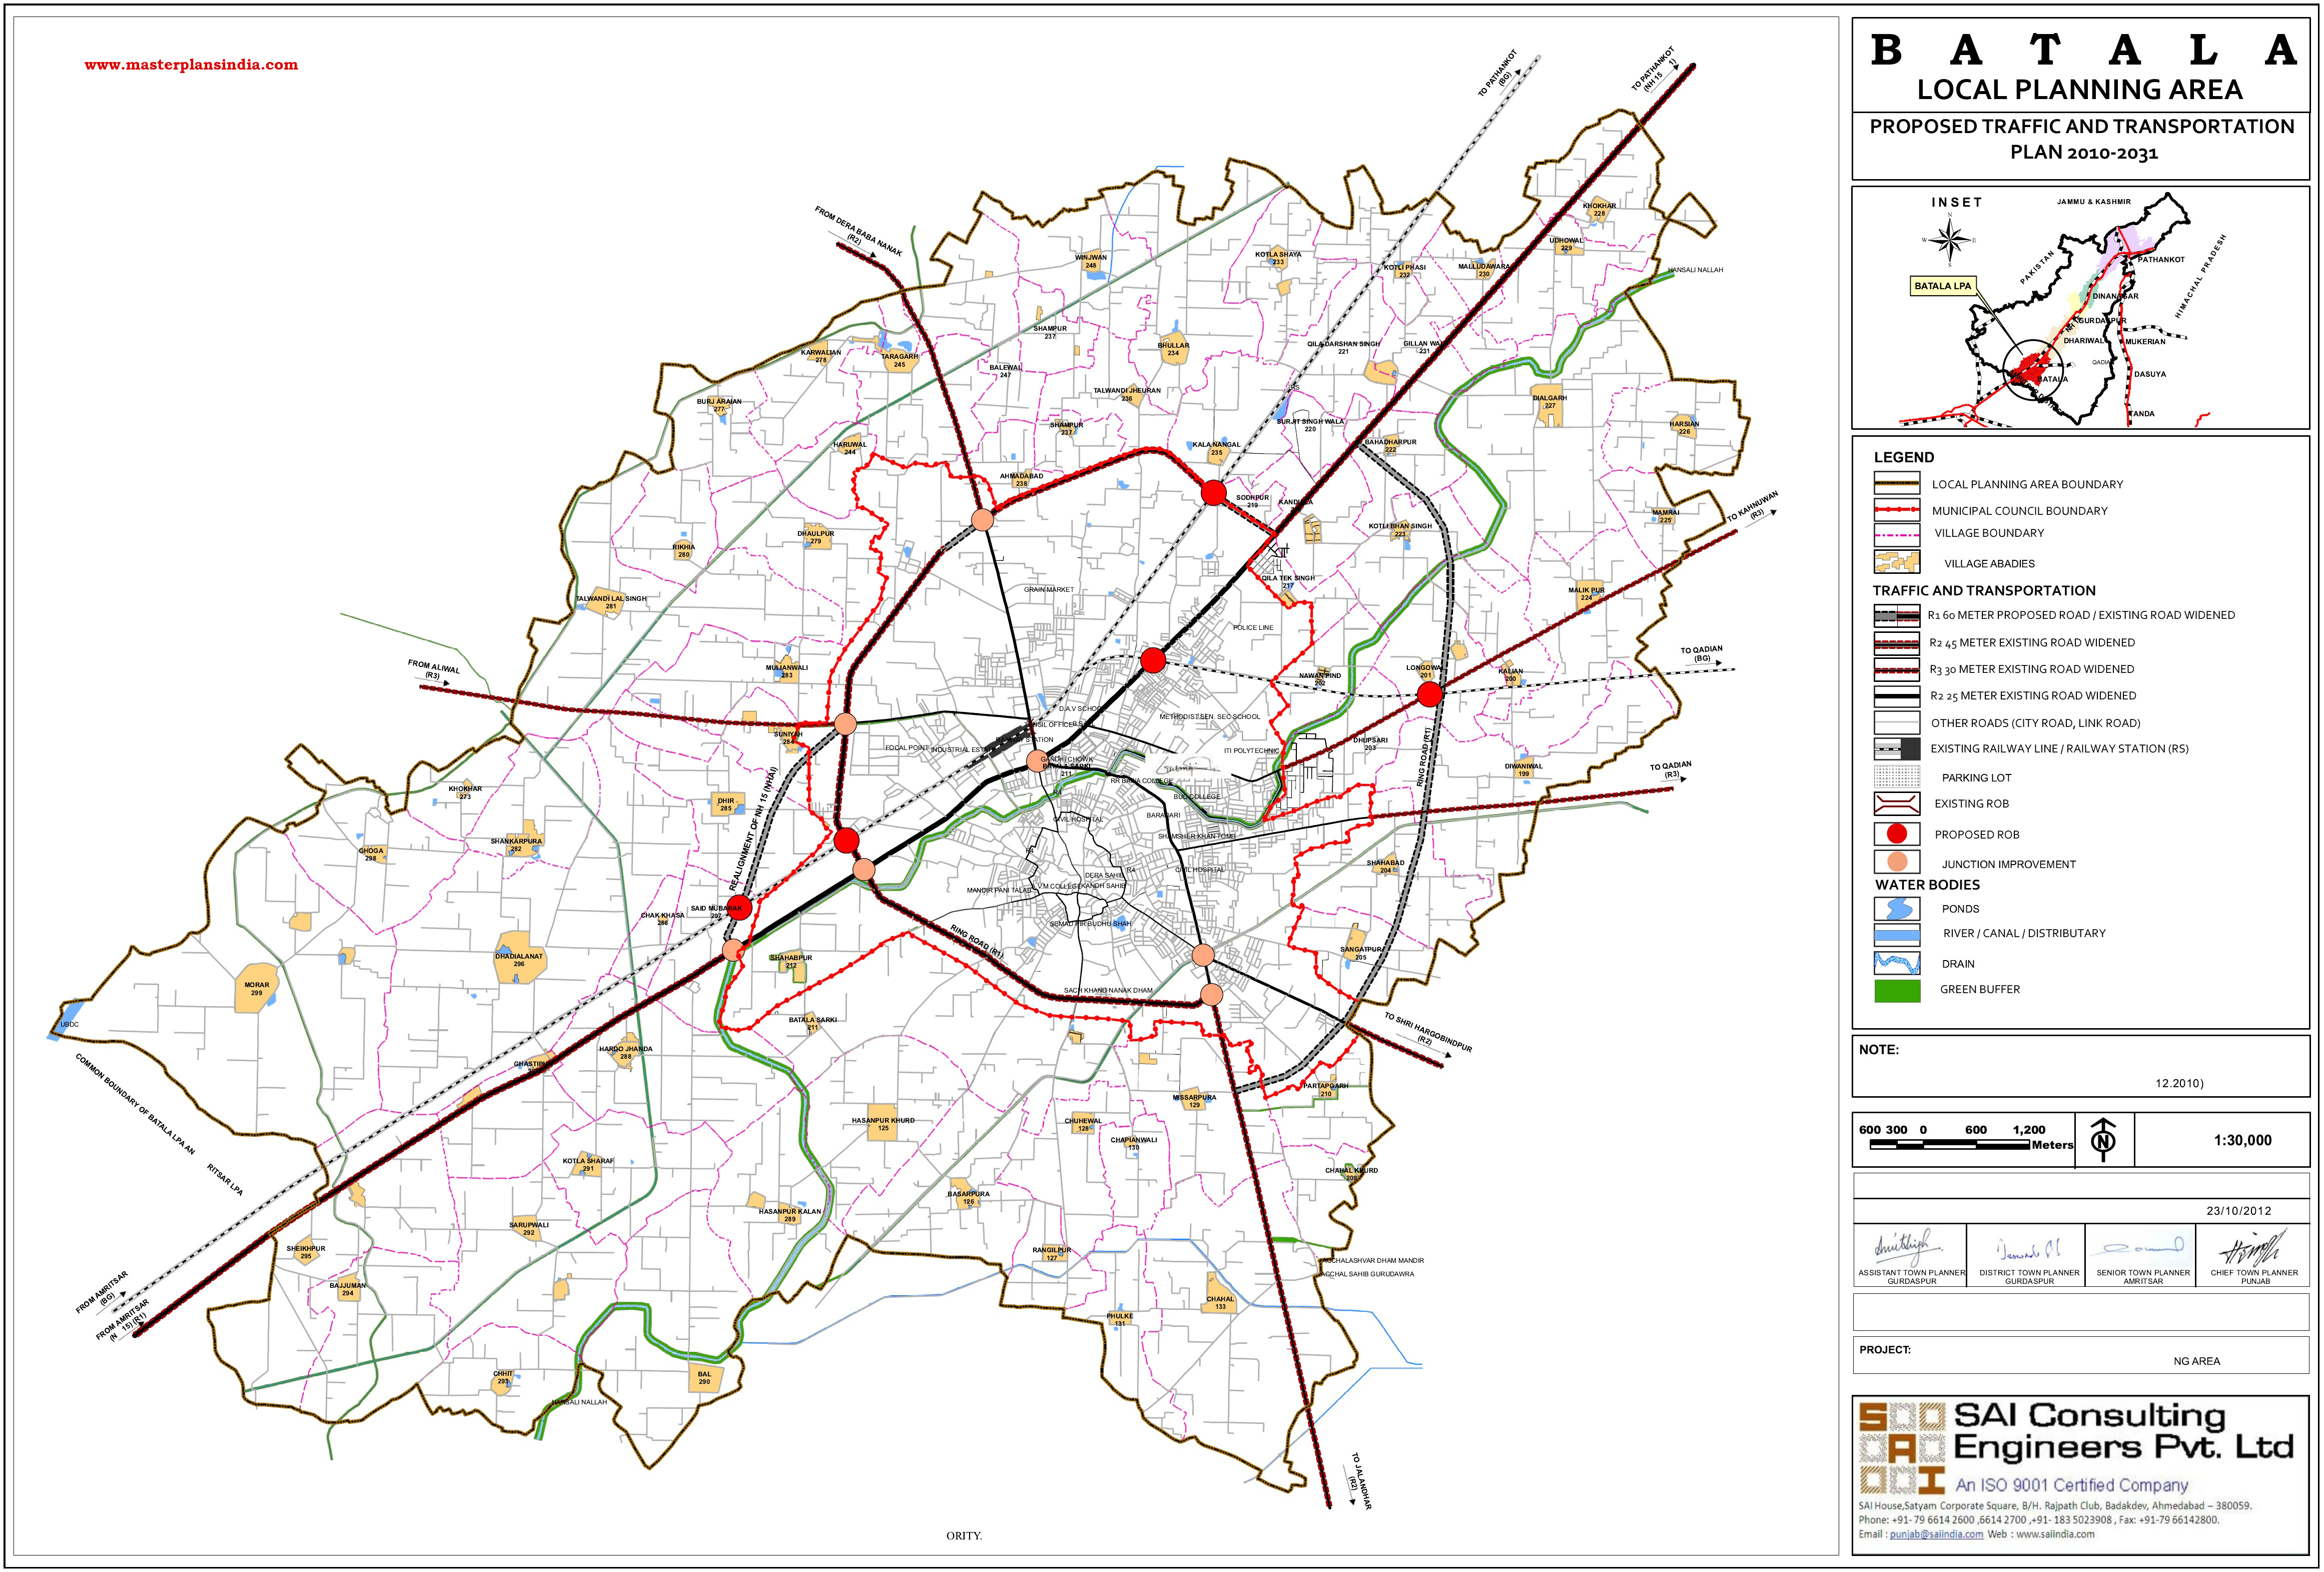 batala-traffic-and-transportation-plan-map Online Job Form In Uttarakhand on searching for, data entry, to apply, work home, stay home, philippines home-based,